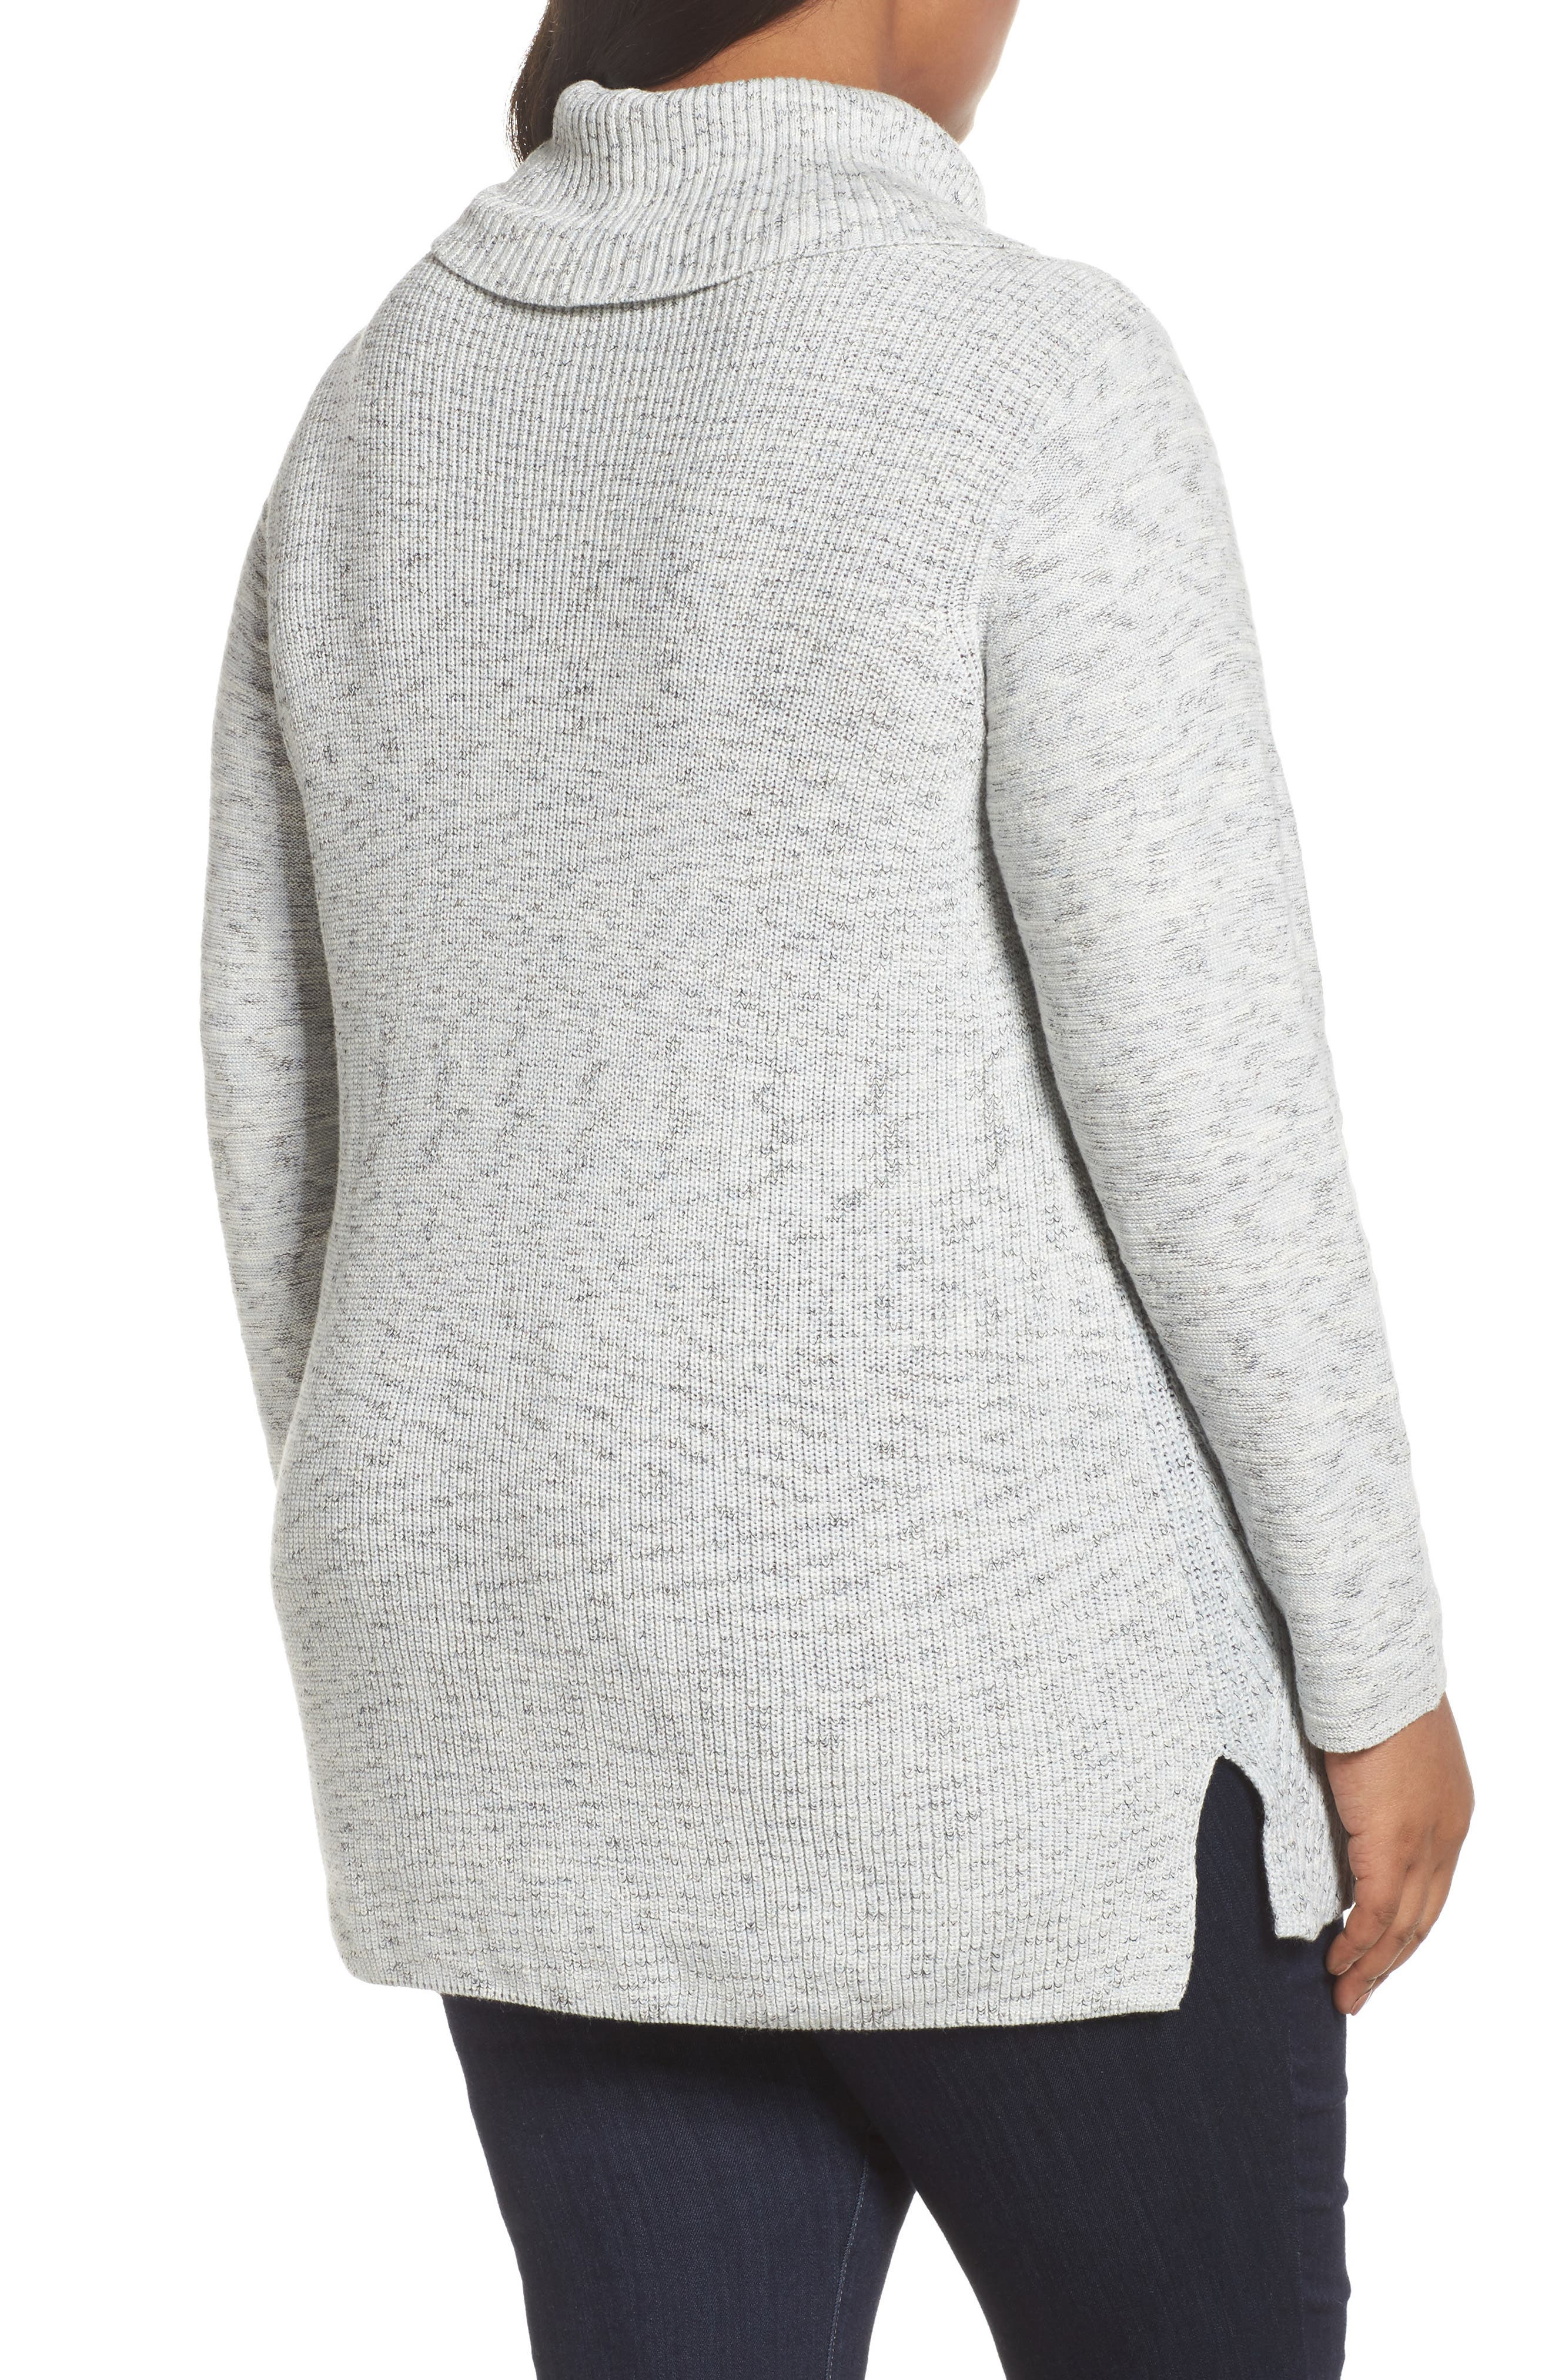 North Star Turtleneck Tunic,                             Alternate thumbnail 2, color,